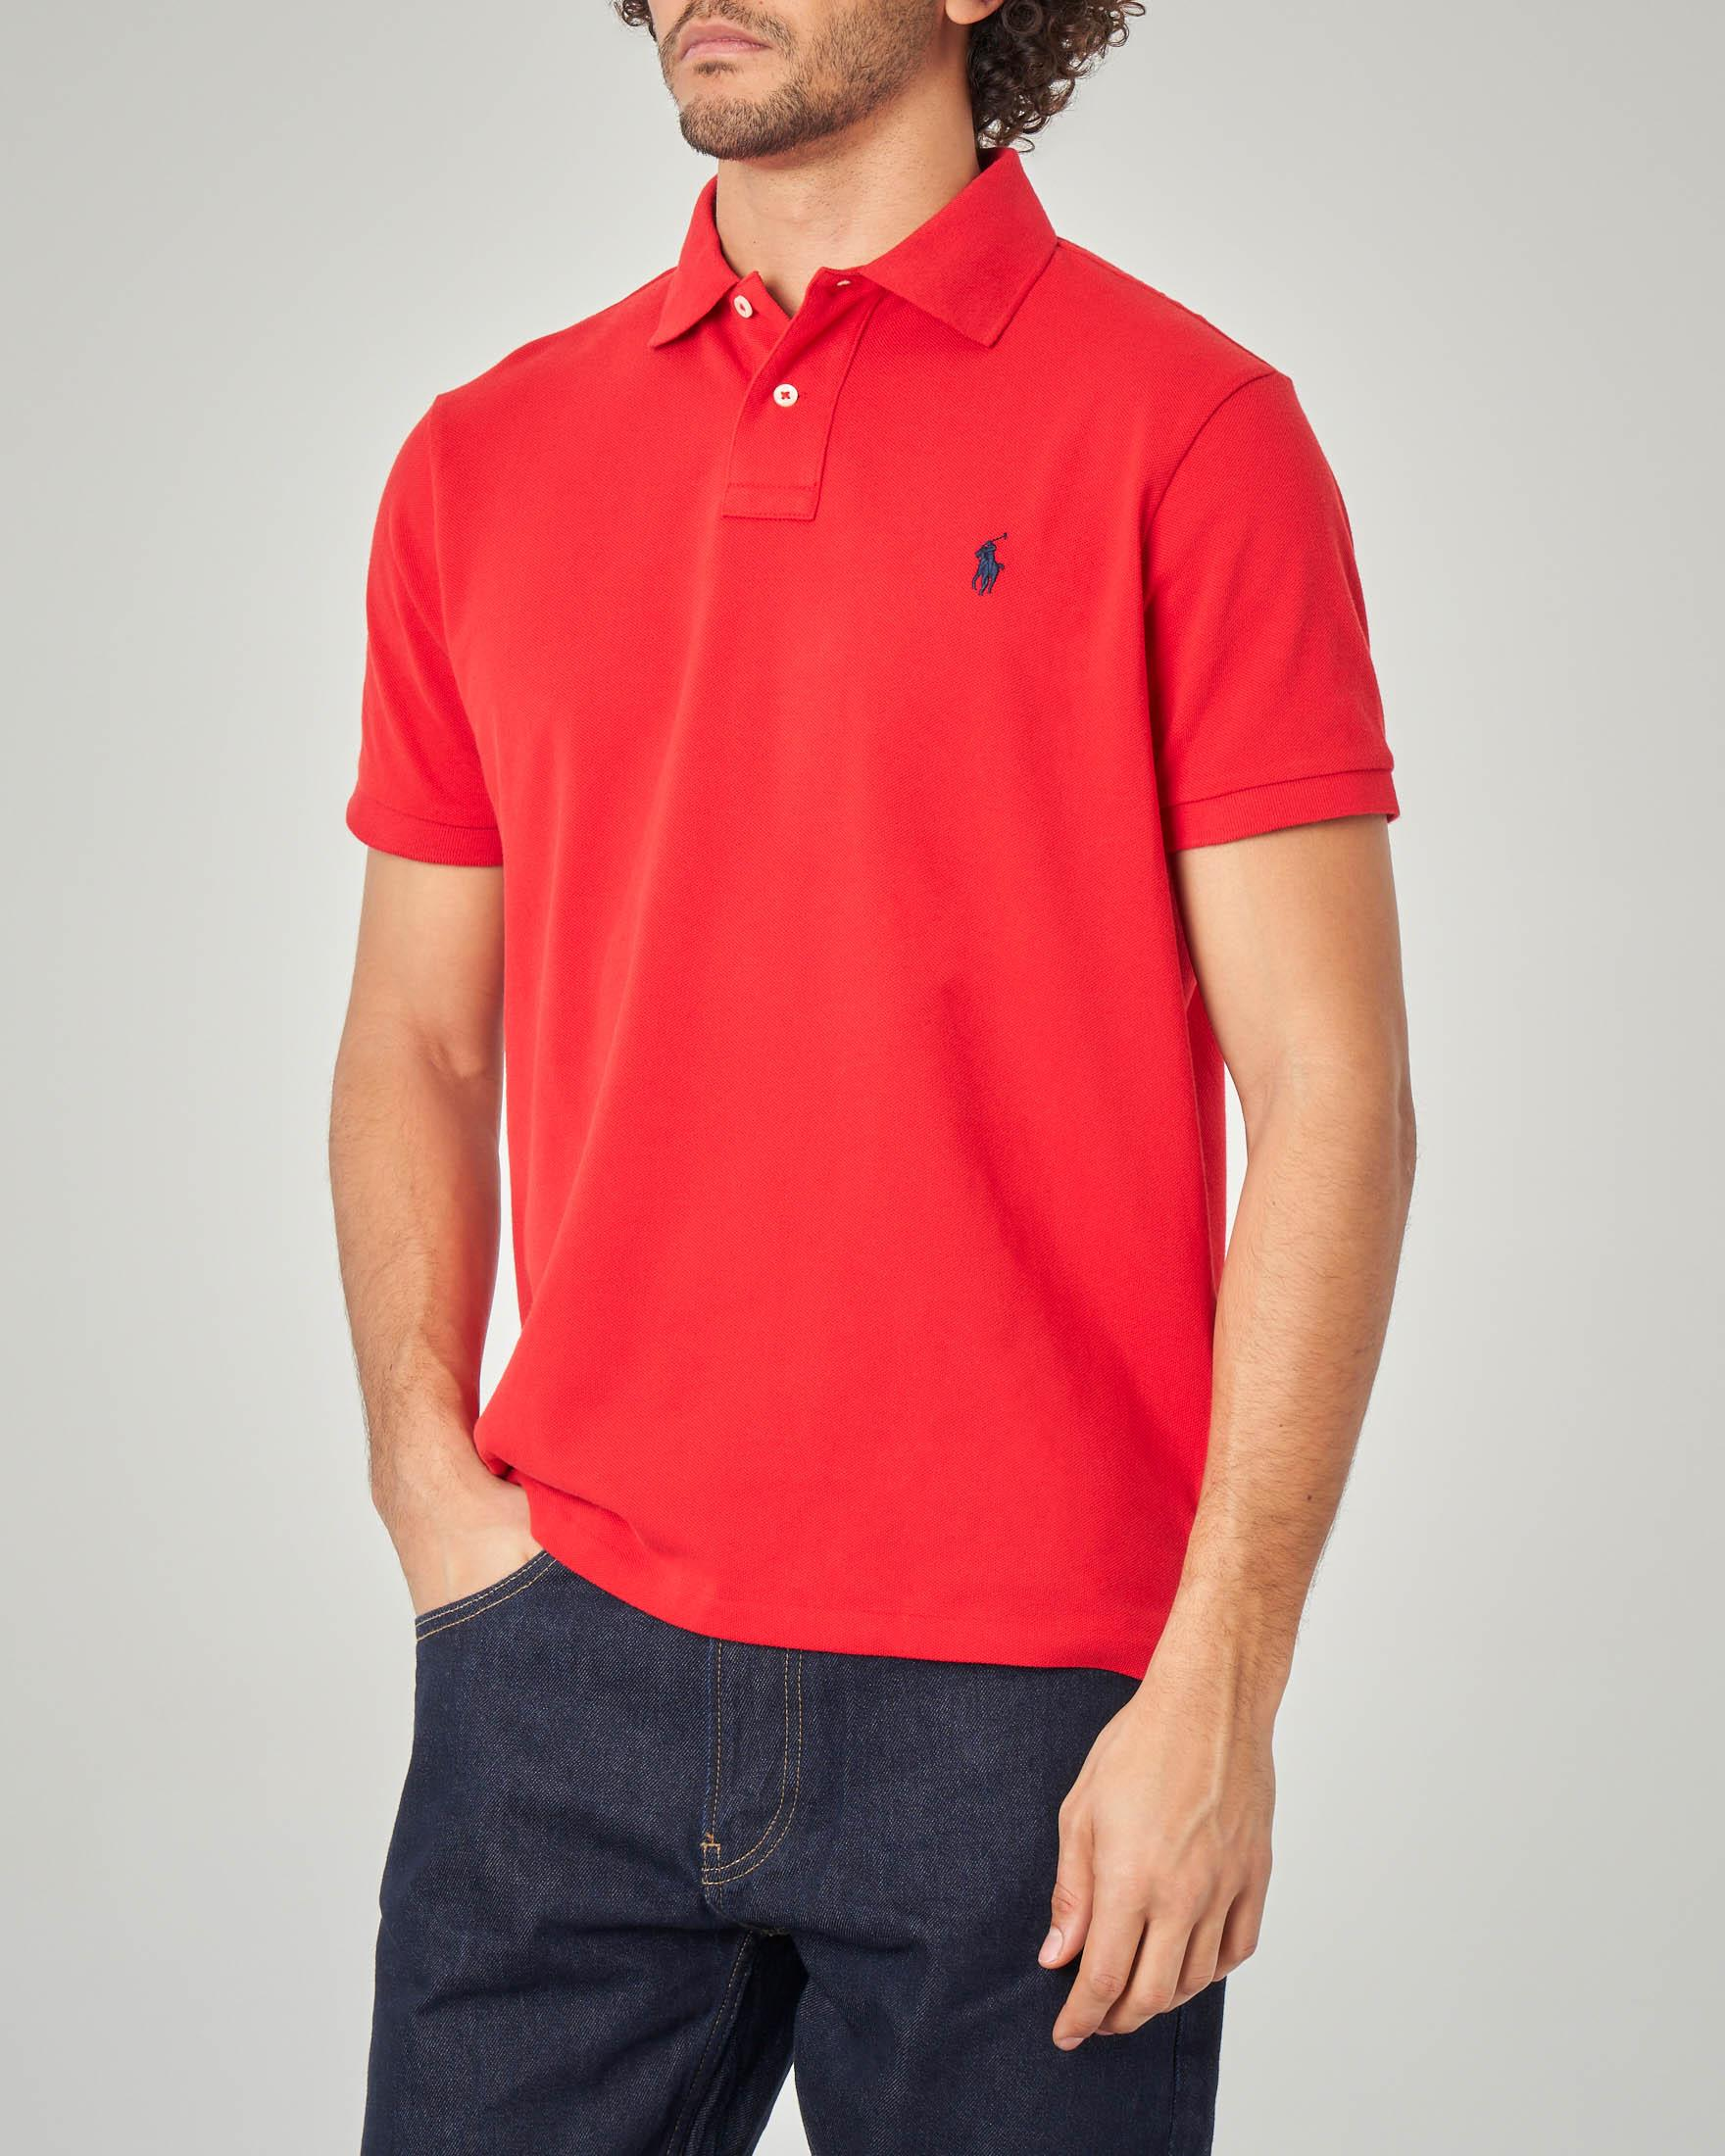 Polo rossa custom slim-fit